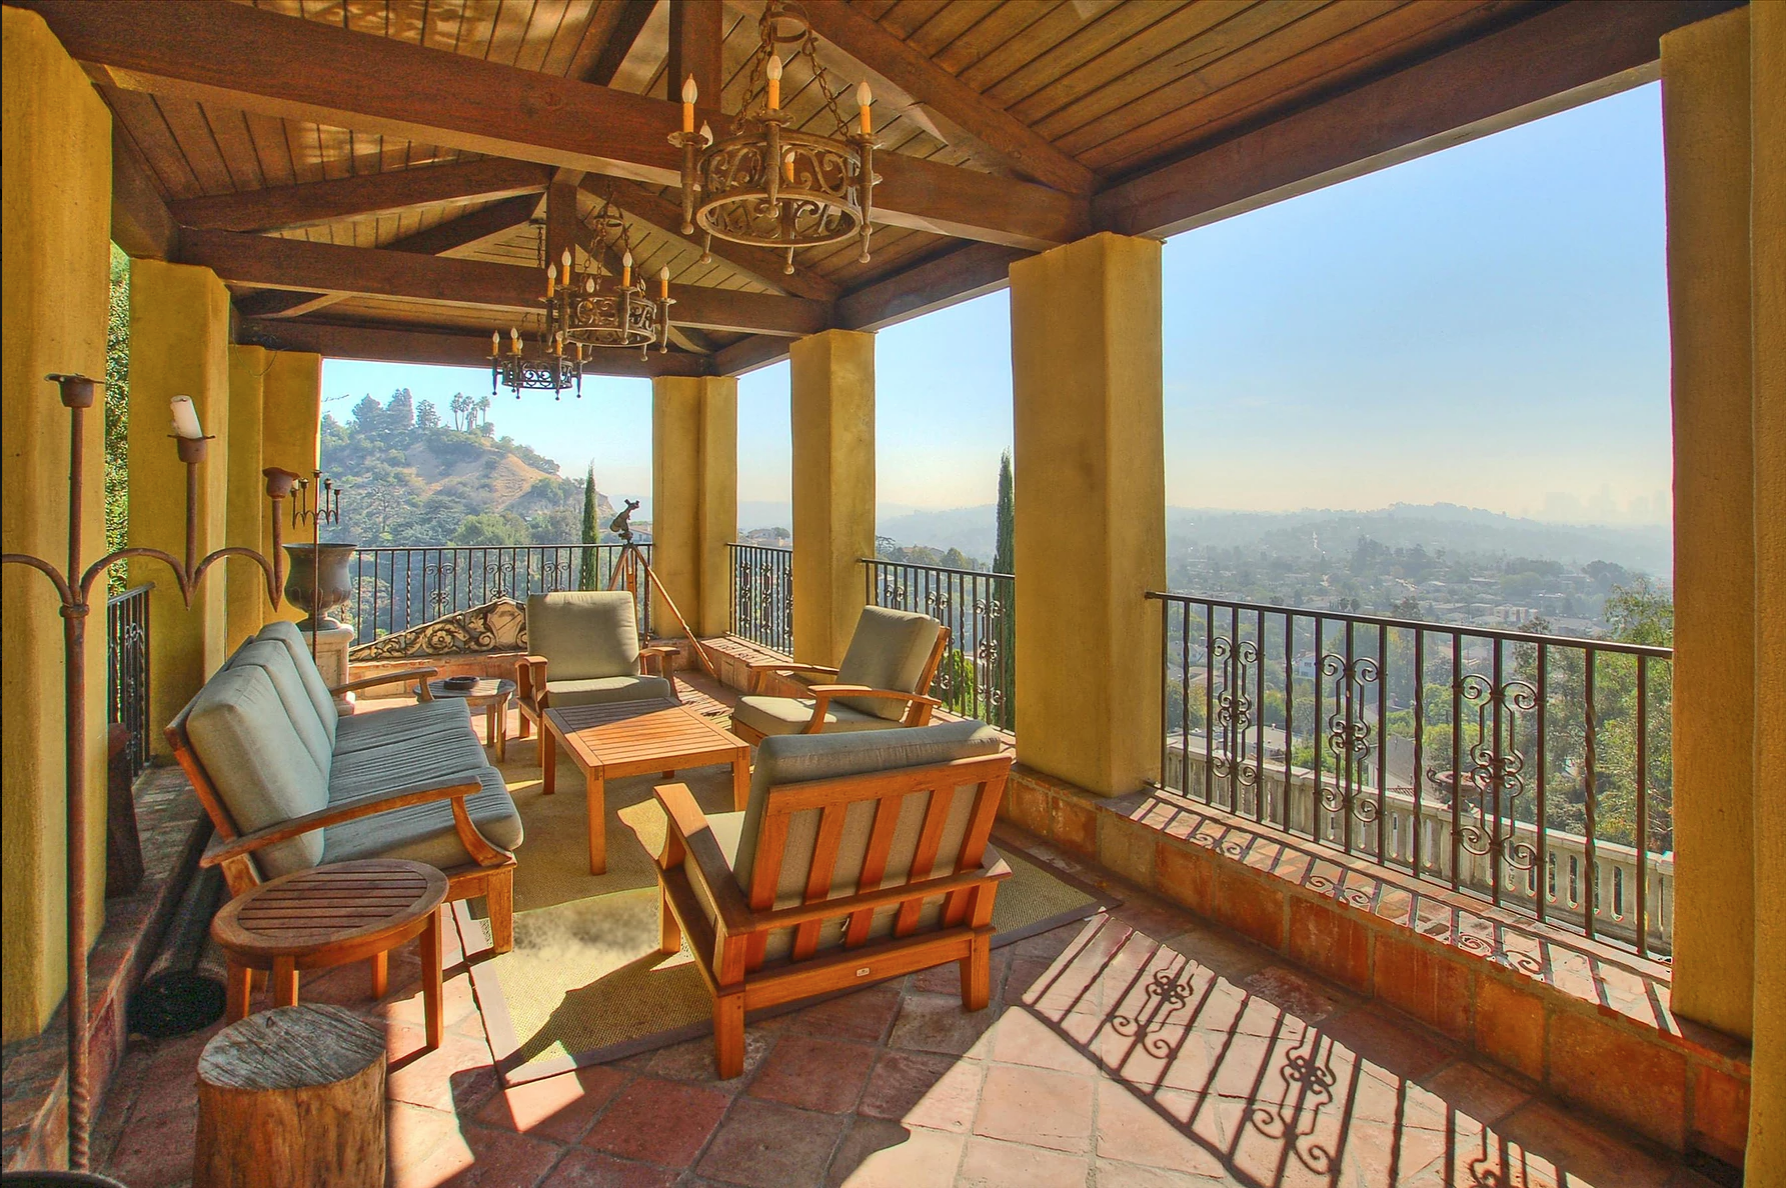 Villa Calabria - Los FelizA magical, cinematic 4,500 sq ft Italian villa high on a hilltop in Los Feliz with iconic swimming pool & epic views of Griffith Park, Los Angeles, & the Pacific Ocean.